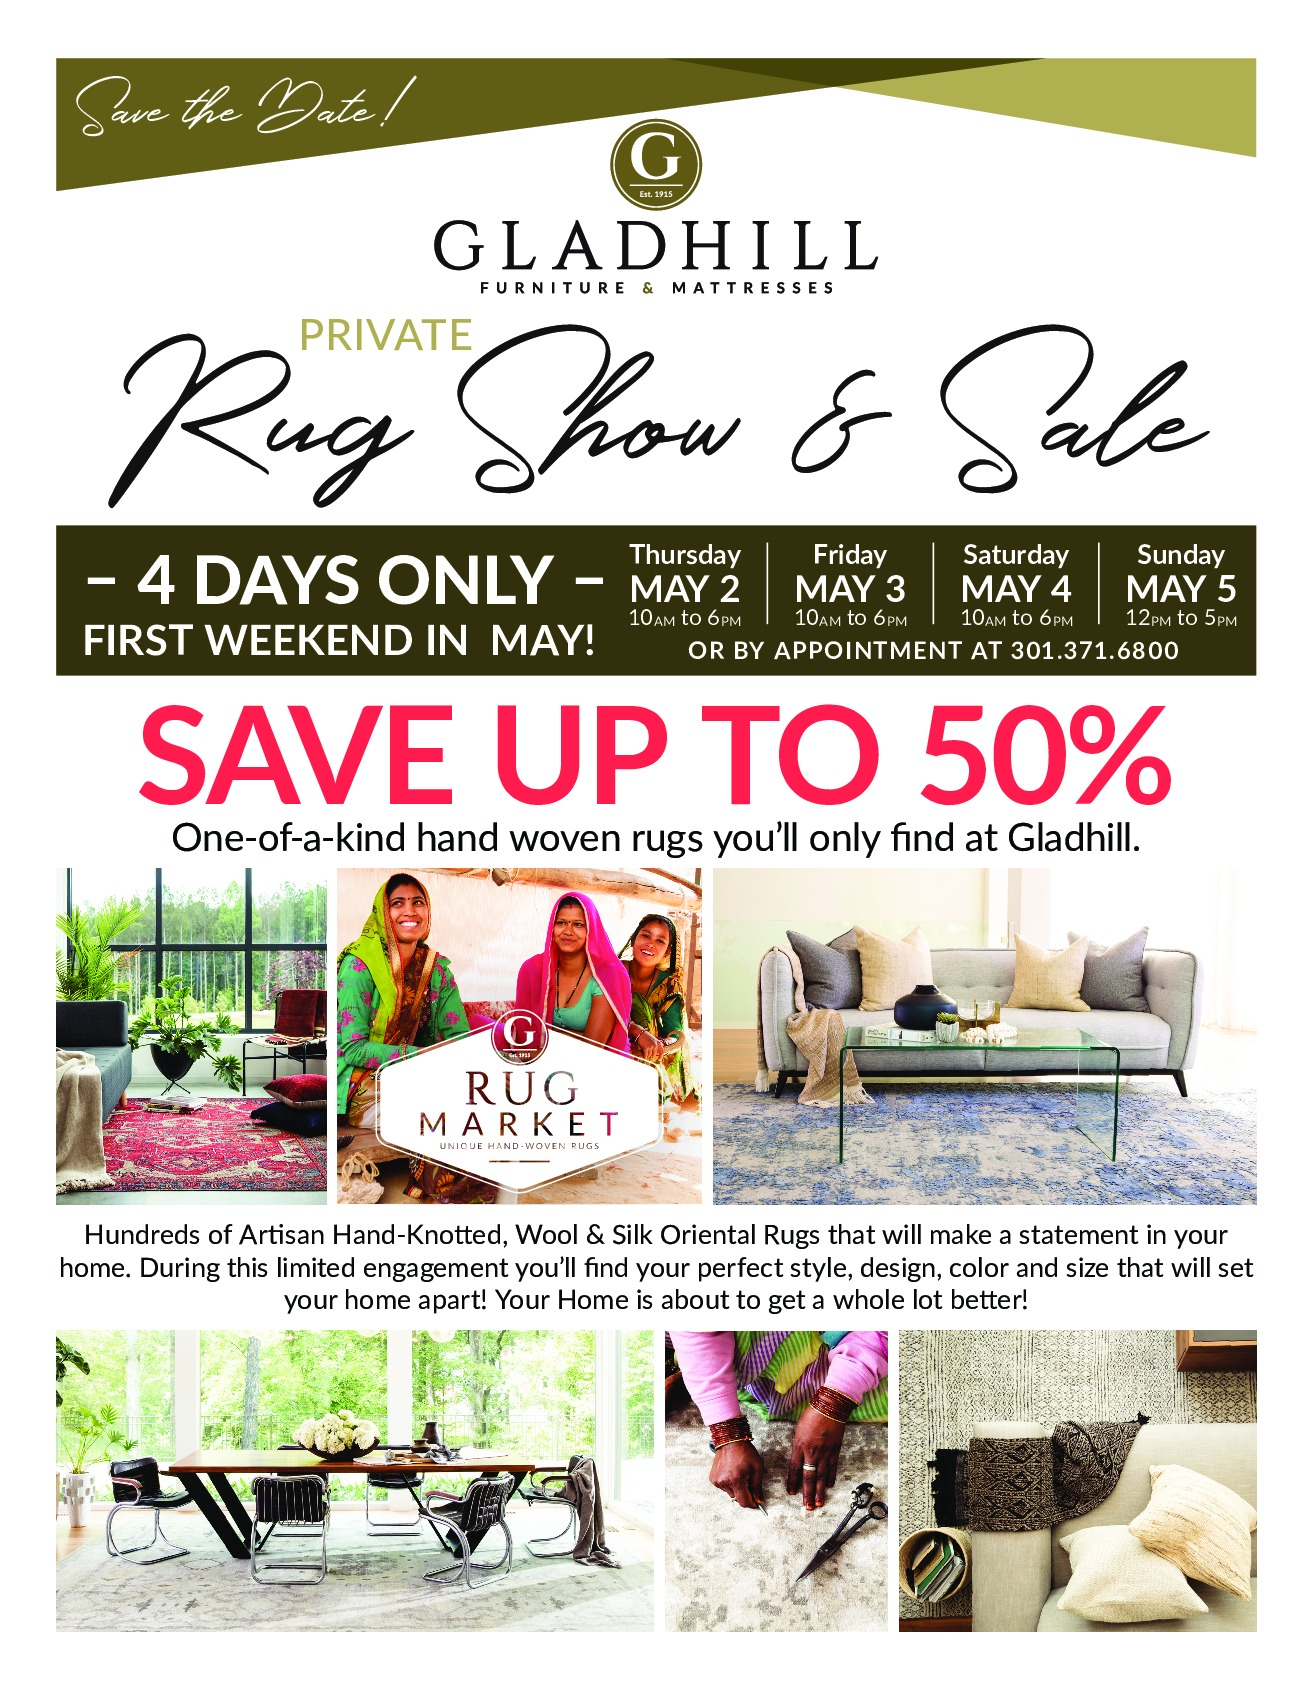 GLAD-9021-1933-RugShow&Sale-Specials Page-HR